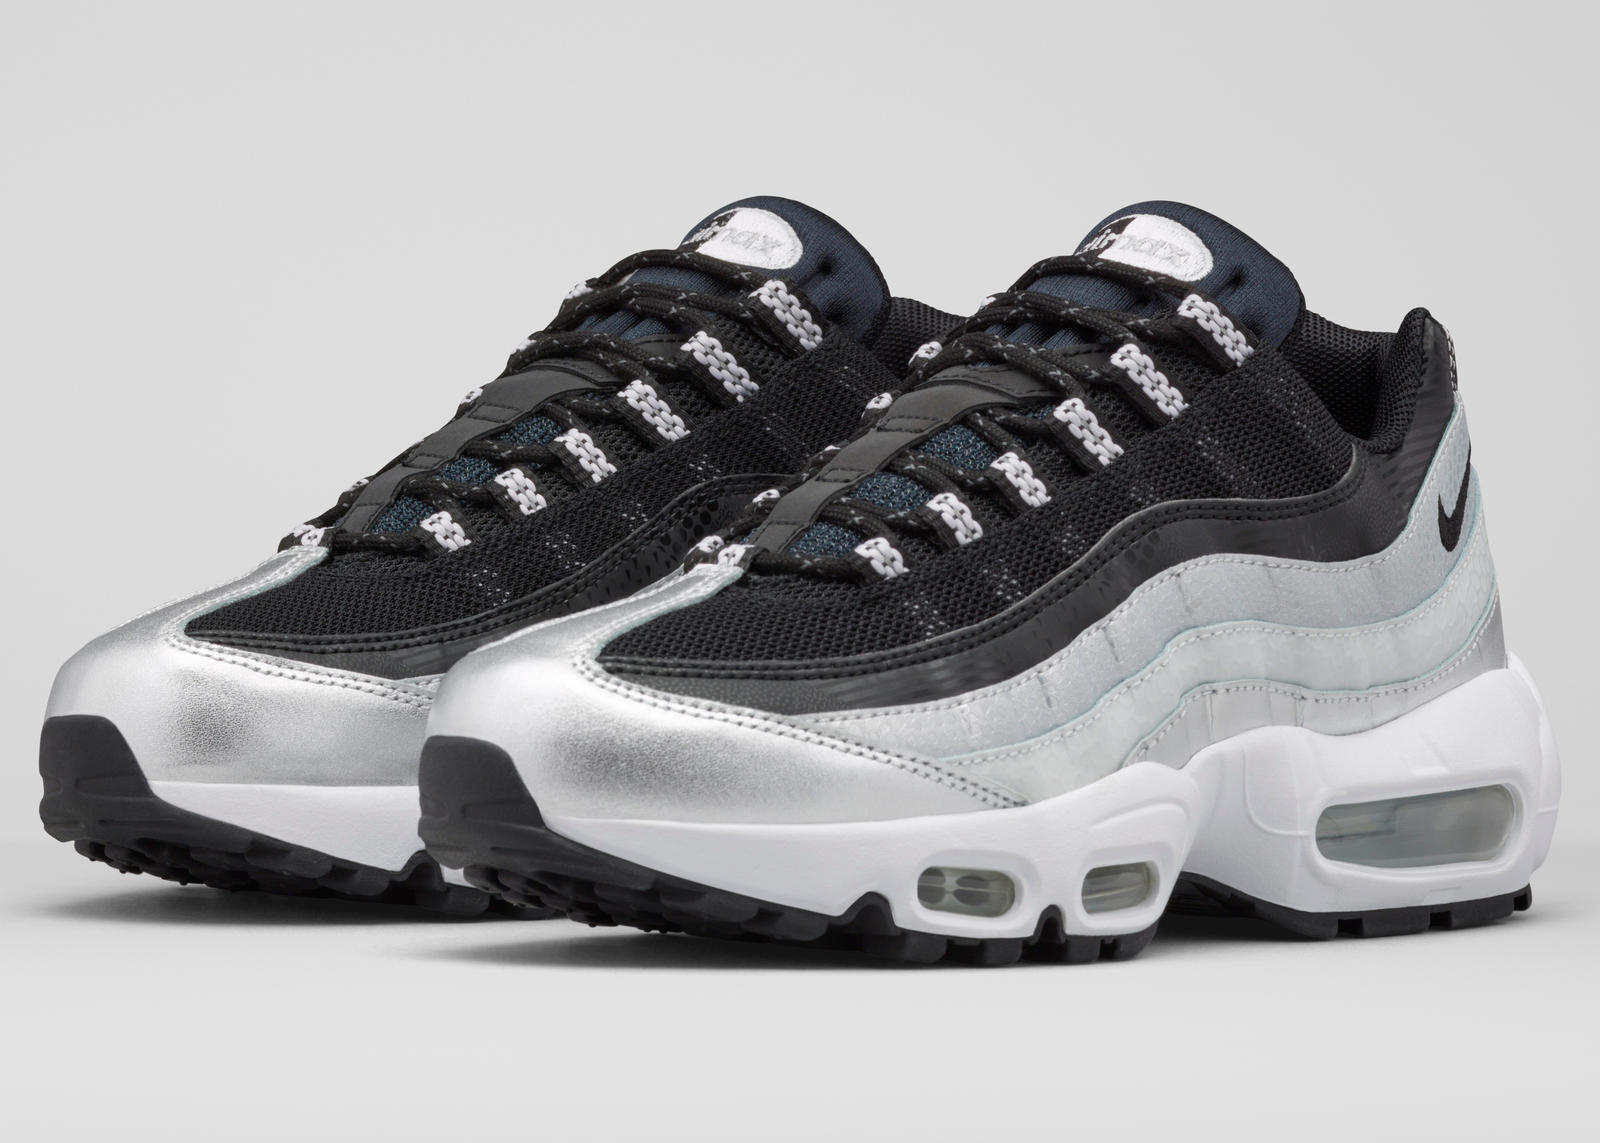 Already Platinum  The Air Max 95 s 20th Anniversary Style - Nike News 045906415